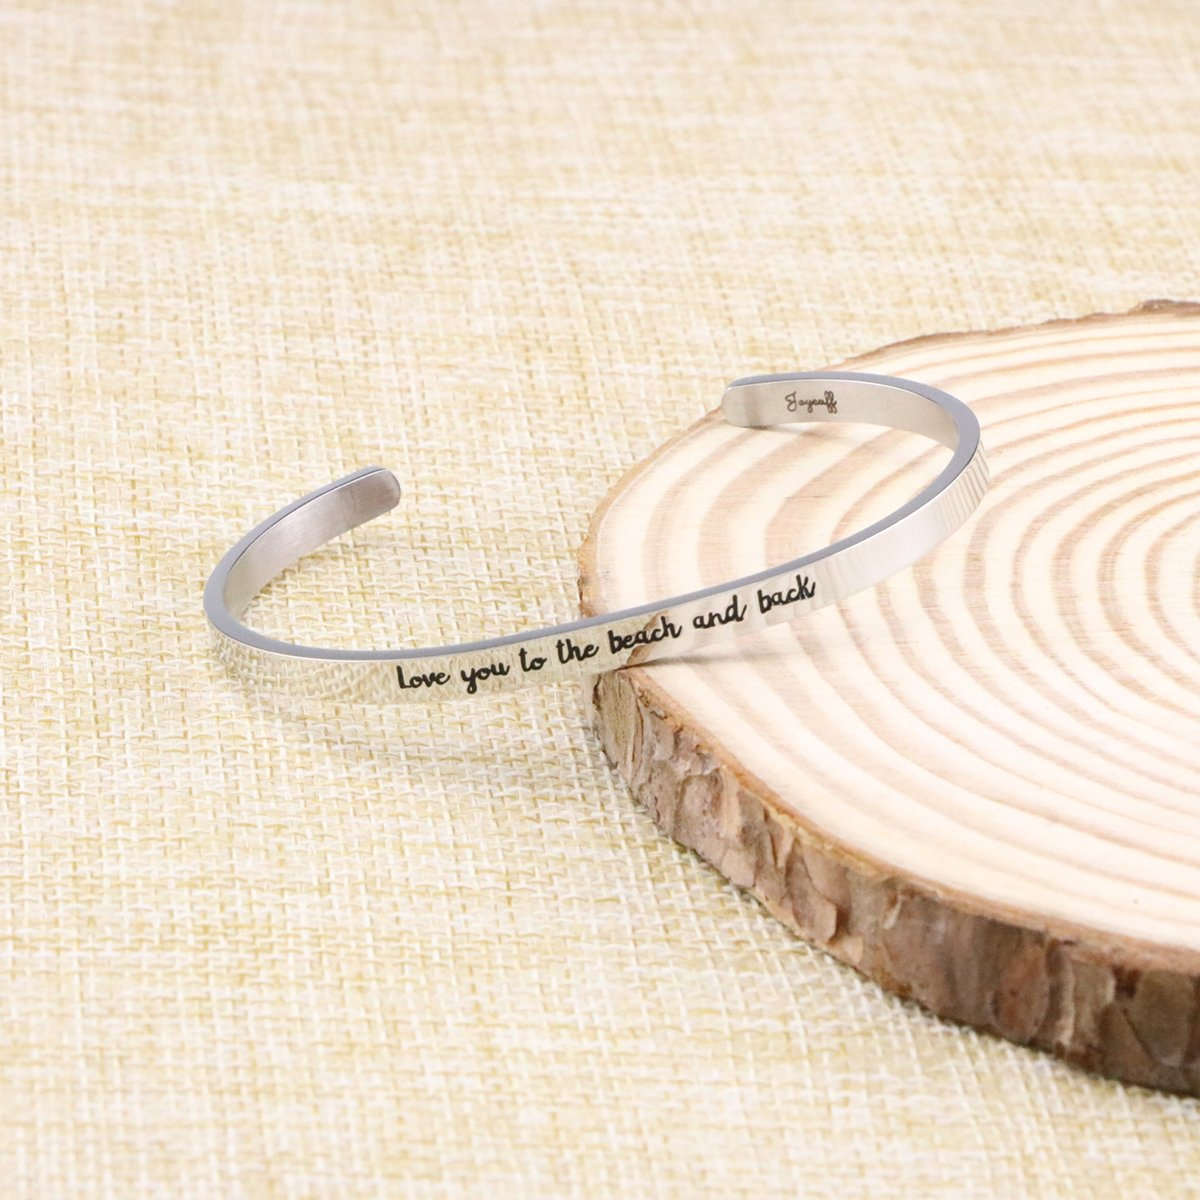 Joycuff Beach Jewelry Stainless Steel Cuff Bangle Bracelet Ocean Inspired Love You To The Beach And Back by Joycuff (Image #3)